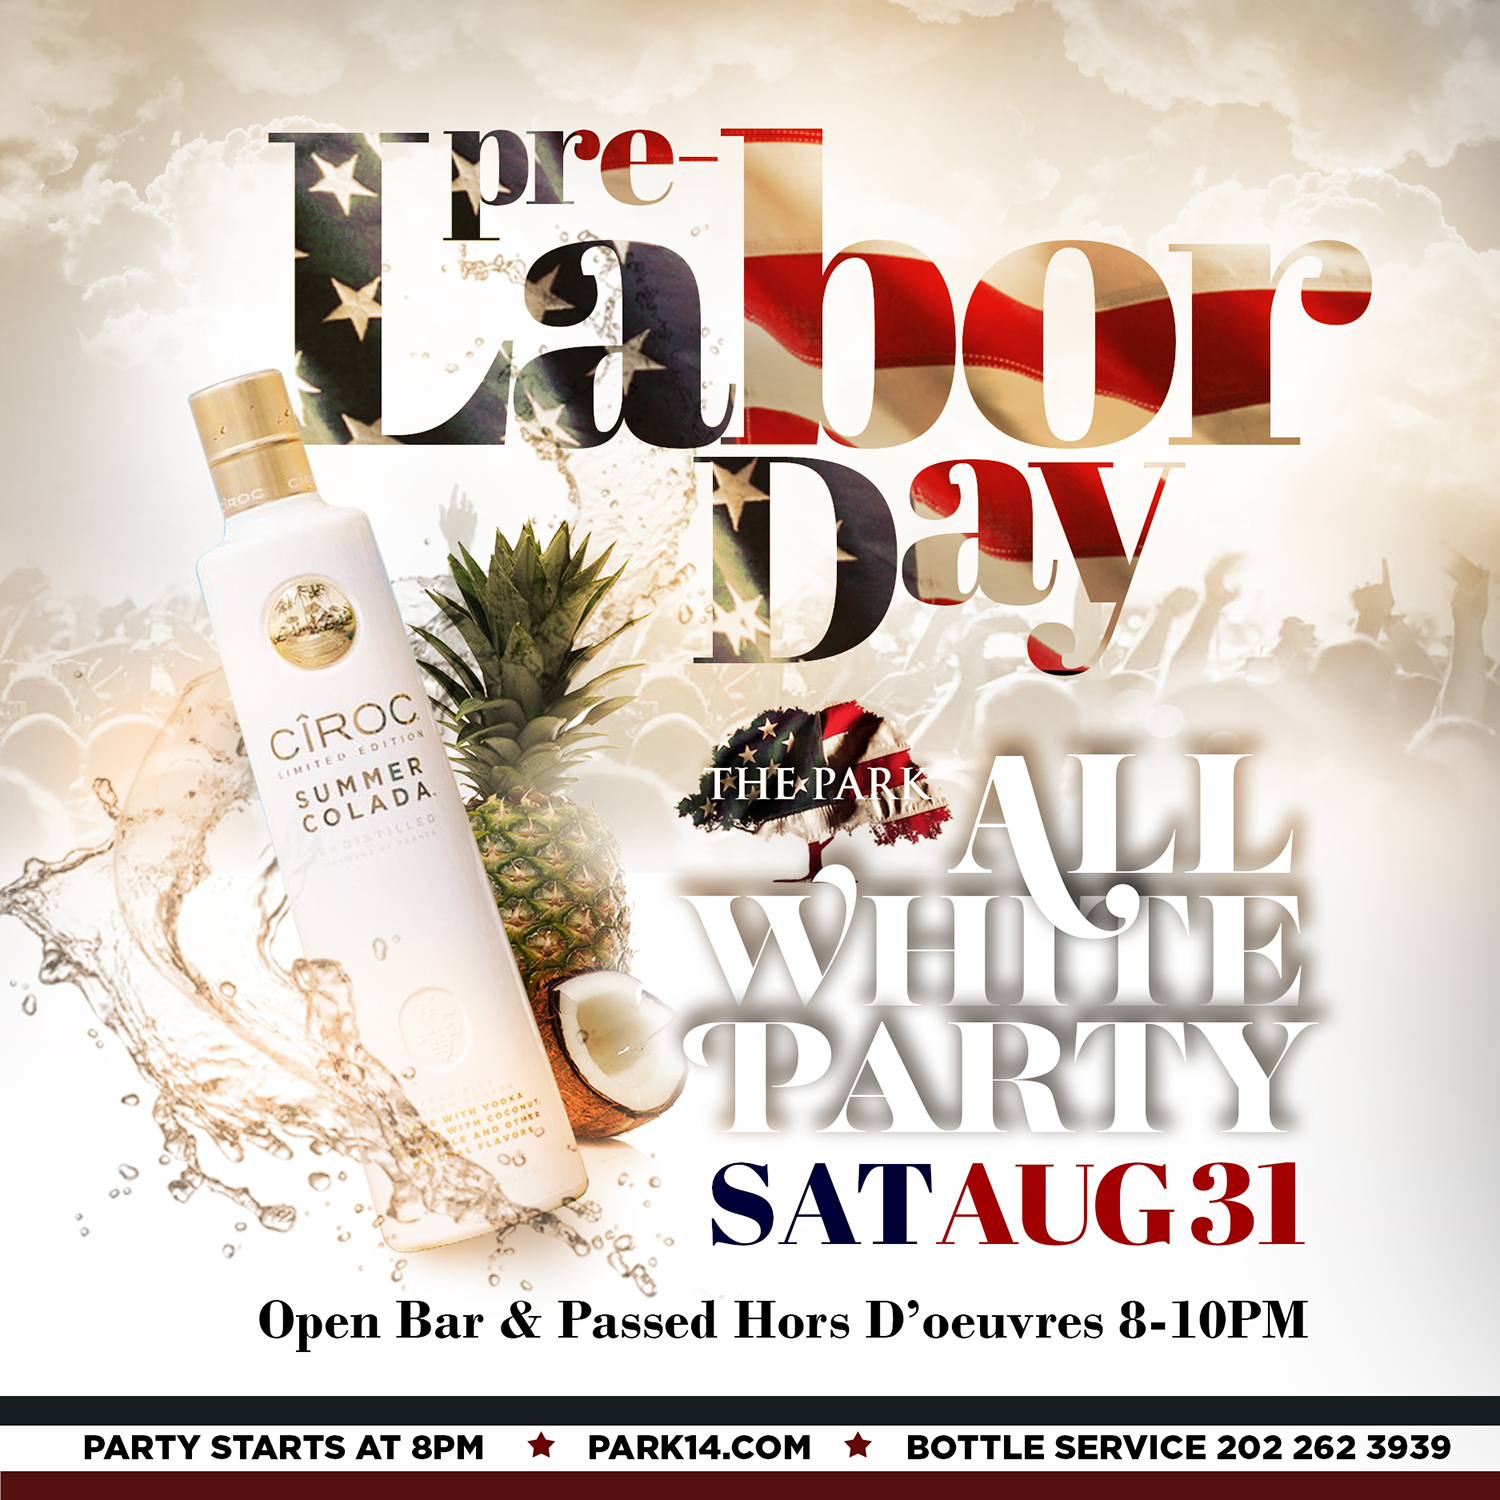 All-White-Labor-Day-Saturday-Flyer-v3.jpg